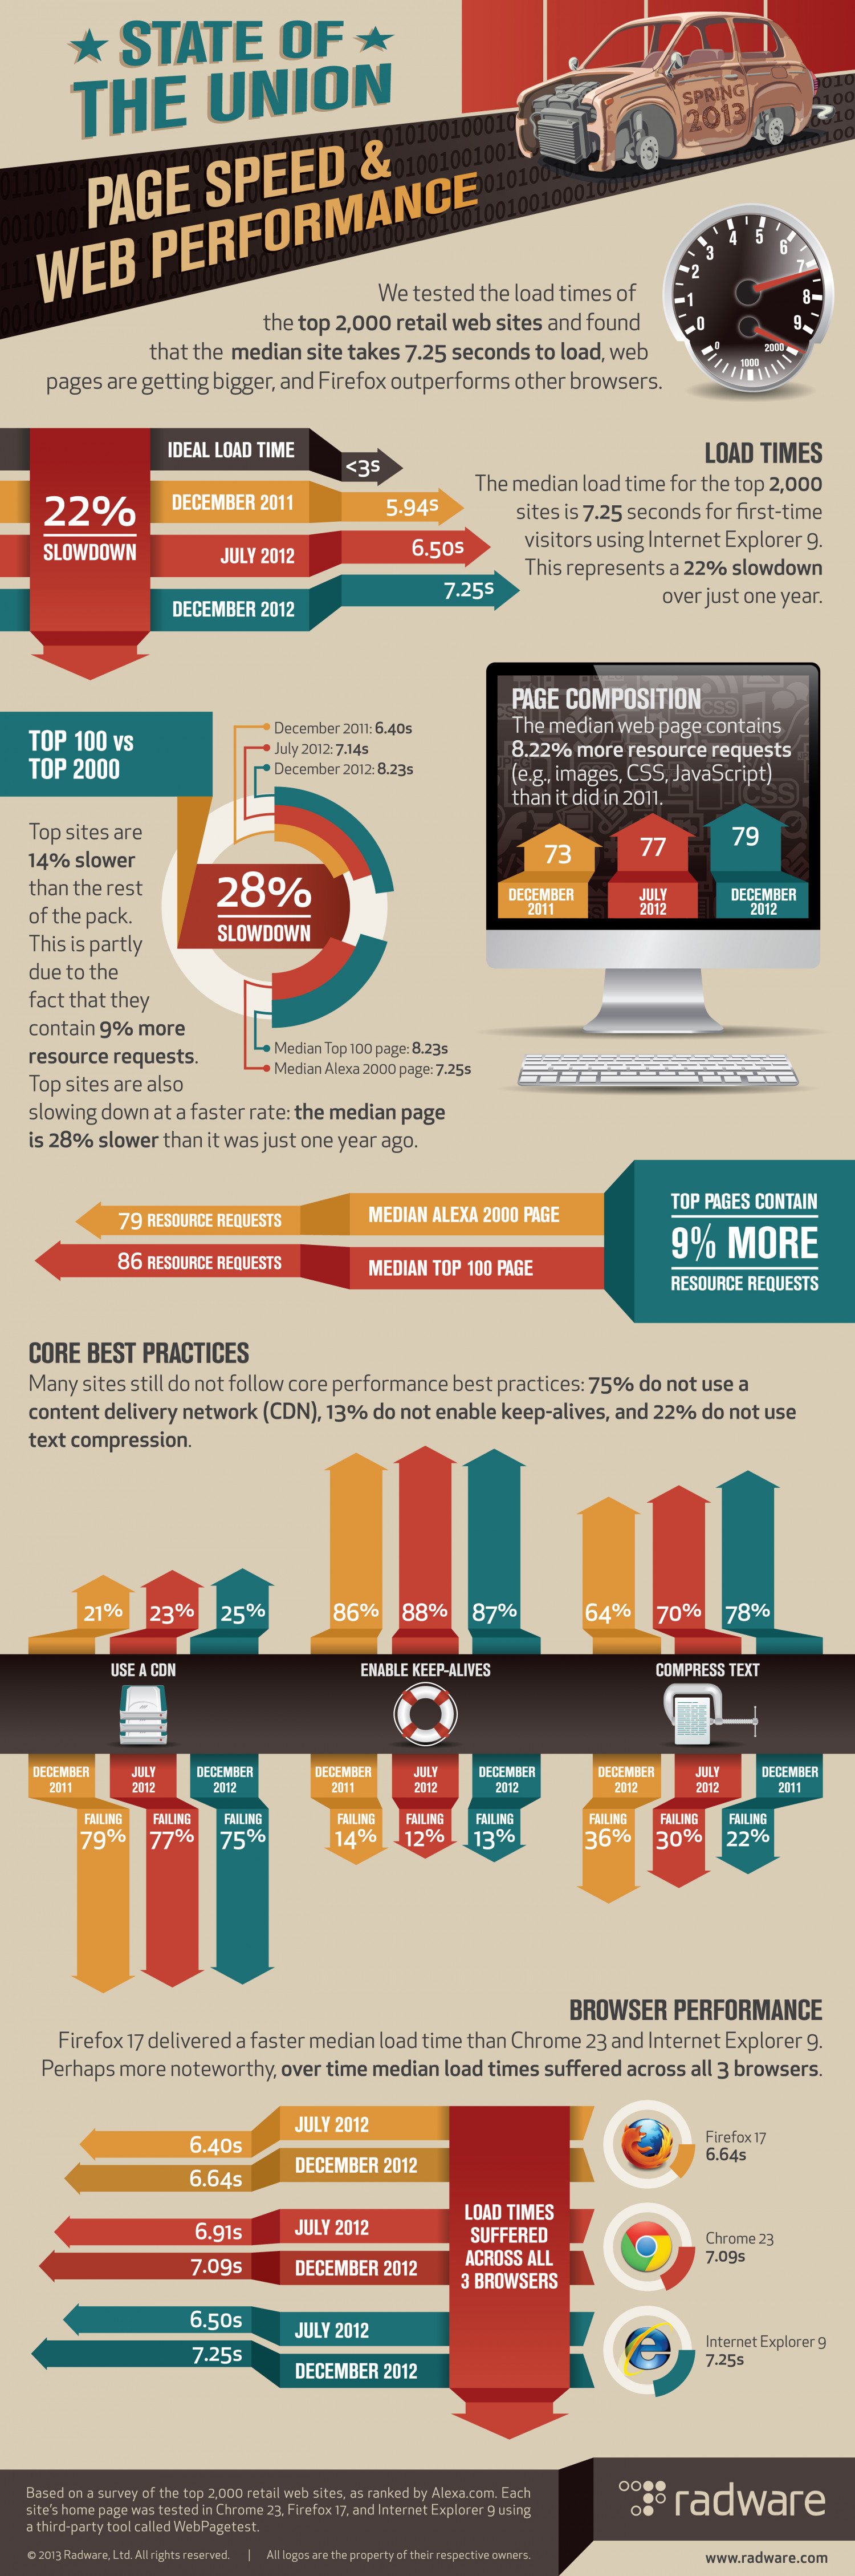 State of the Union: Page Speed & Web Performance [Spring 2013] Infographic